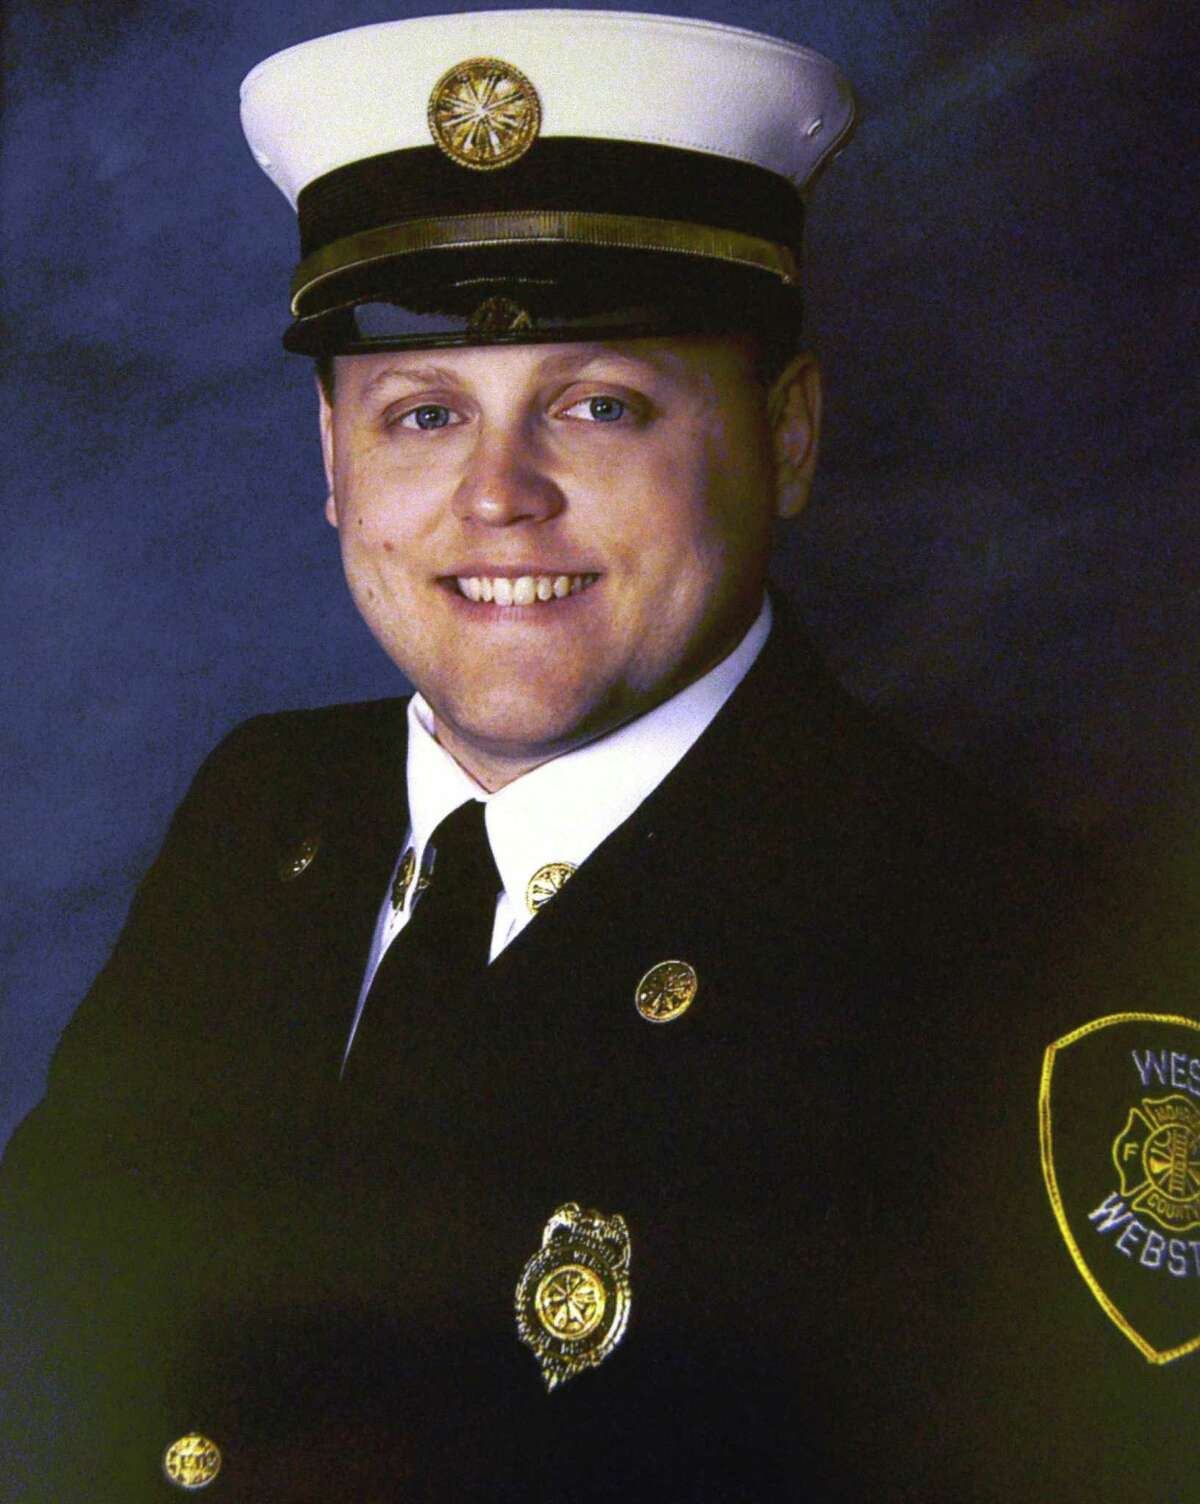 This undated image provided by the West Webster fire department shows firefighter Lt. Michael Chiapperini. Chiapperini, 43, also the Webster Police Department's public information officer, was killed when William Spengler, 62, who served 17 years in prison for the 1980 hammer killing of his grandmother, armed himself with a revolver, a shotgun and a semiautomatic rifle before he set his house on fire to lure first responders into a death trap before dawn Monday, Dec. 24, 2012. (AP Photo/West Webster Fire Department)